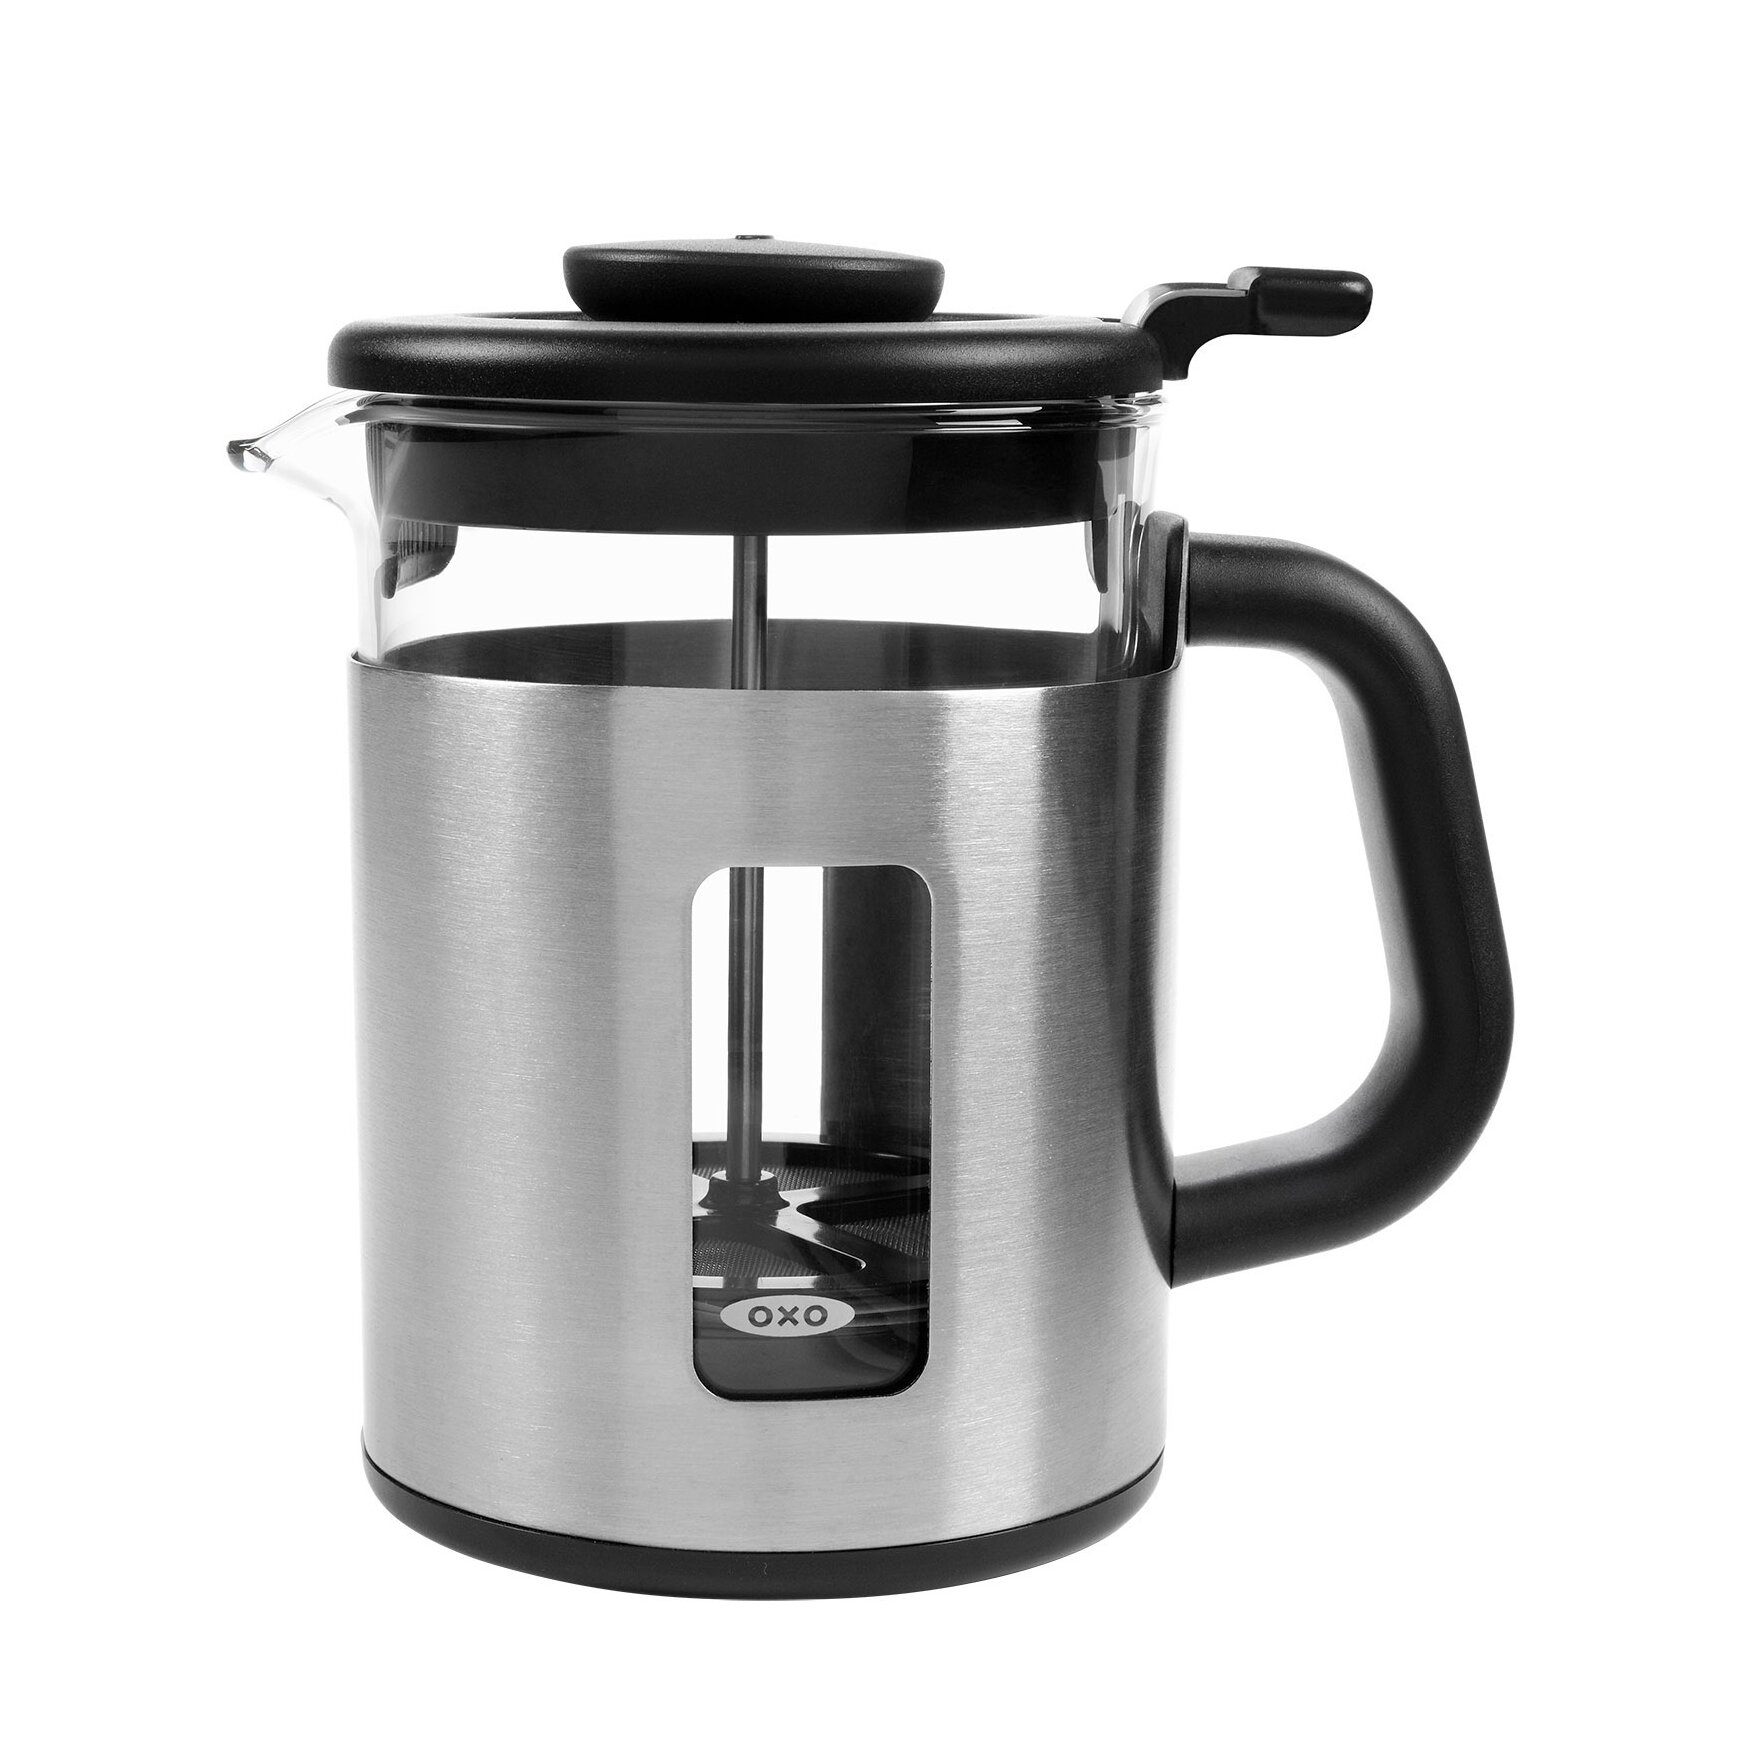 French Press Coffee Maker Images : OXO Good Grips French Press Coffee Maker & Reviews Wayfair